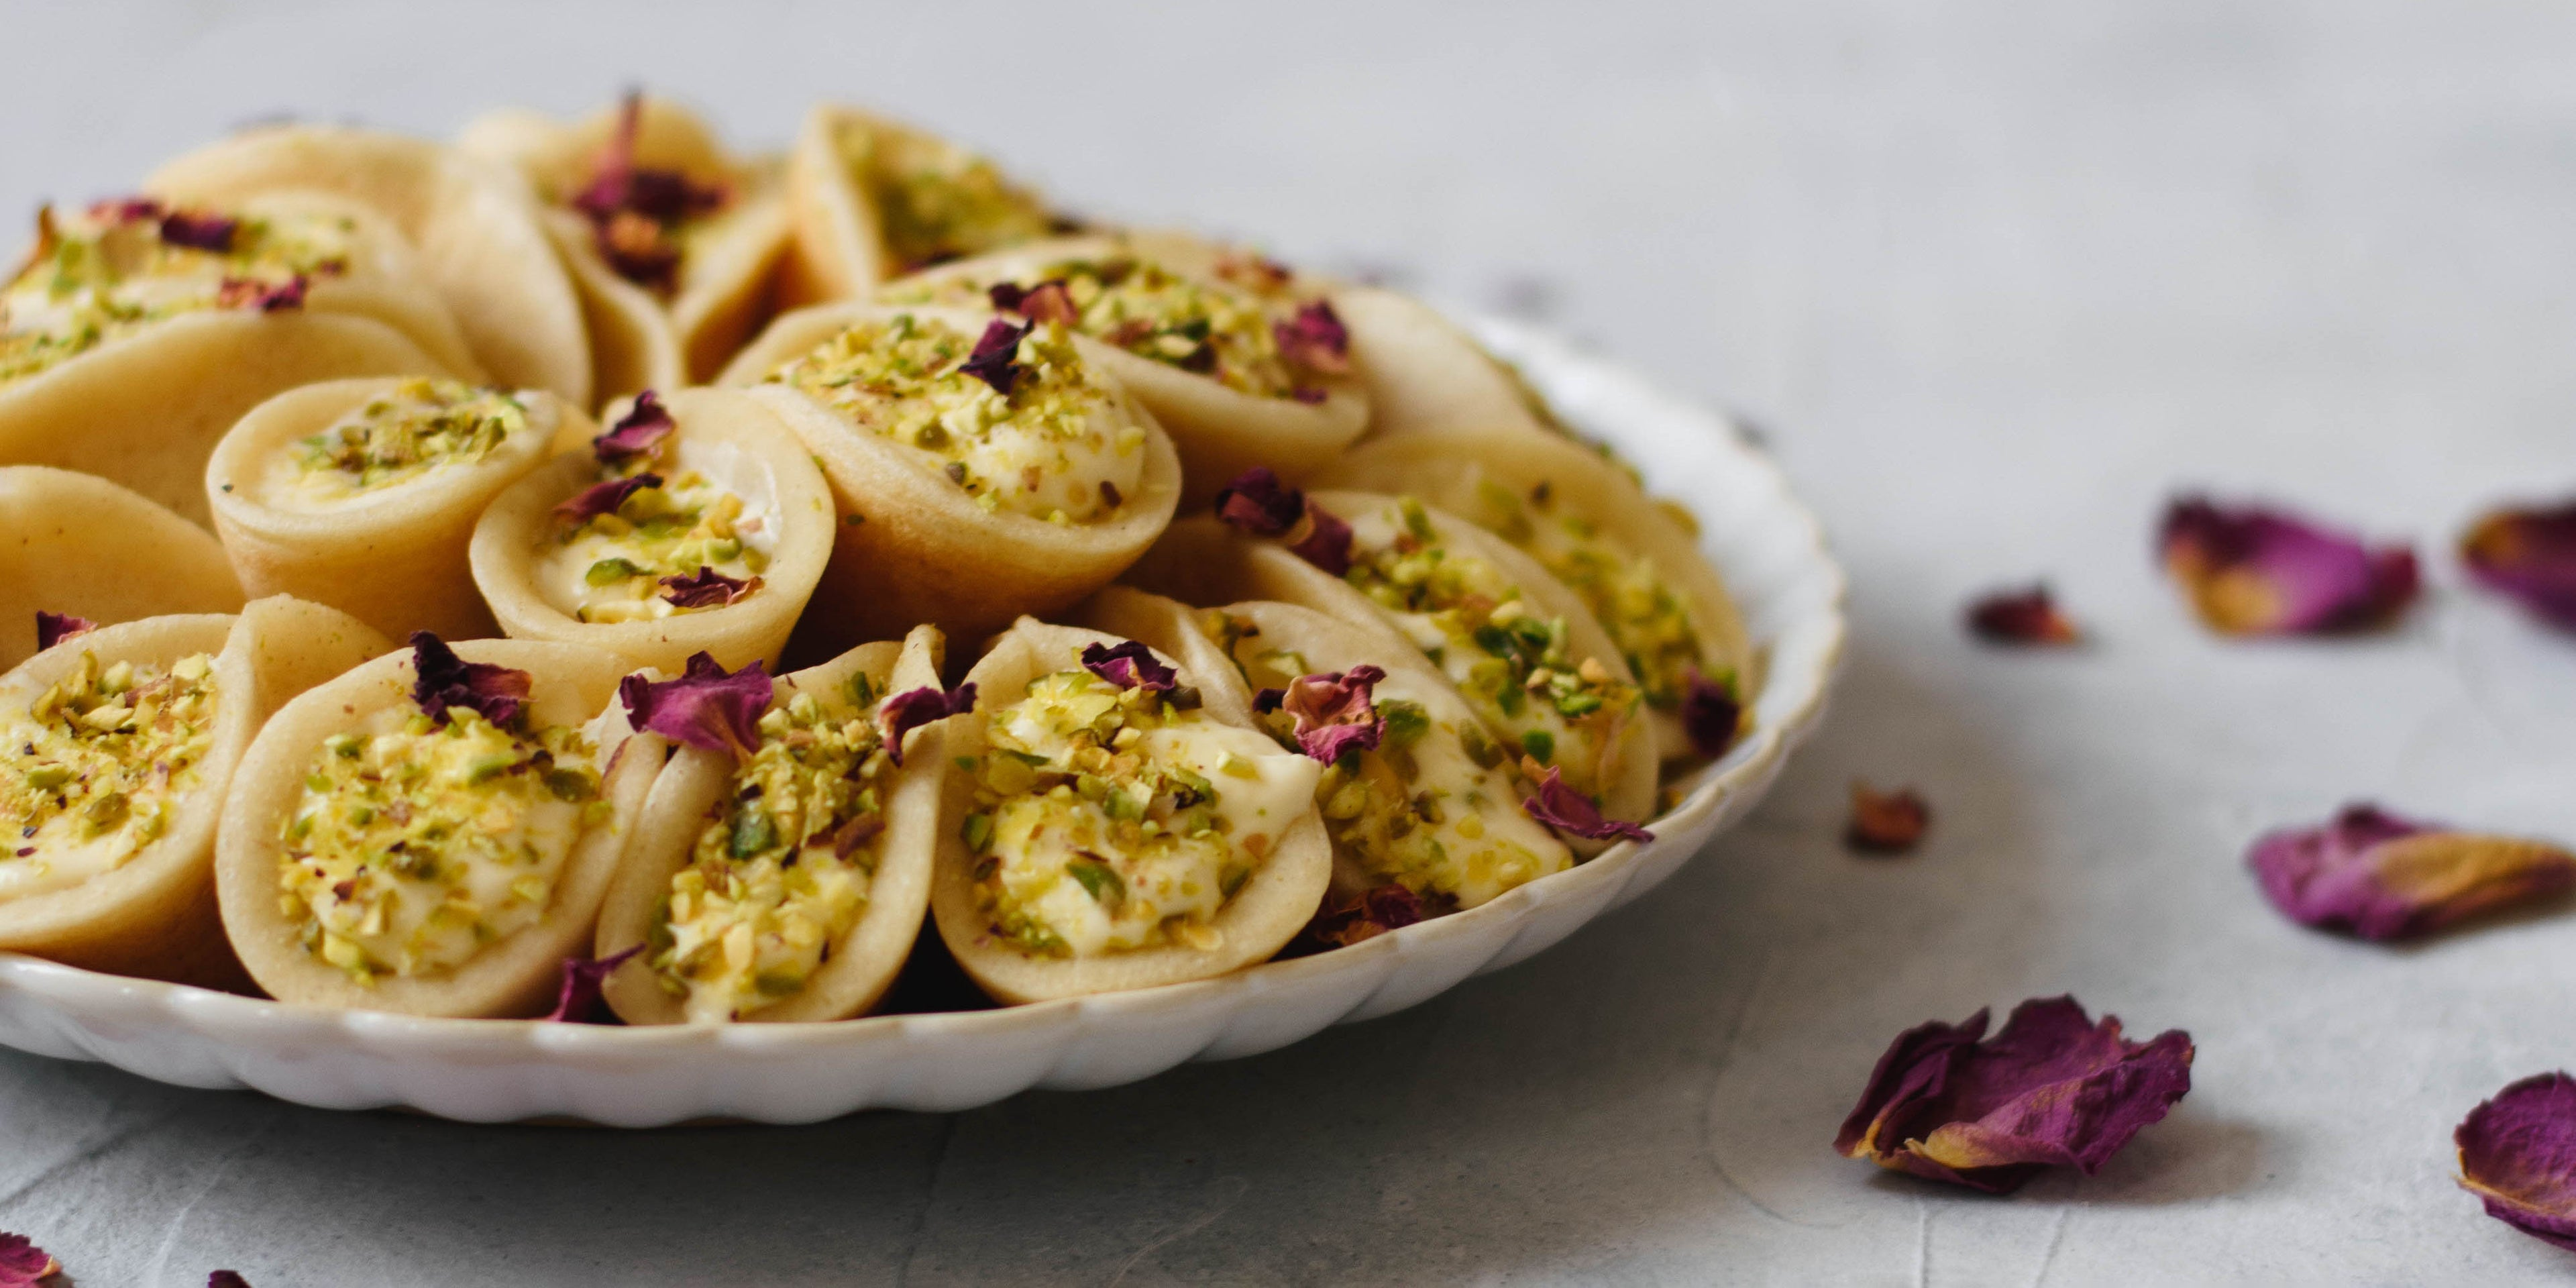 Qatayef on a plate next to petals for decoration